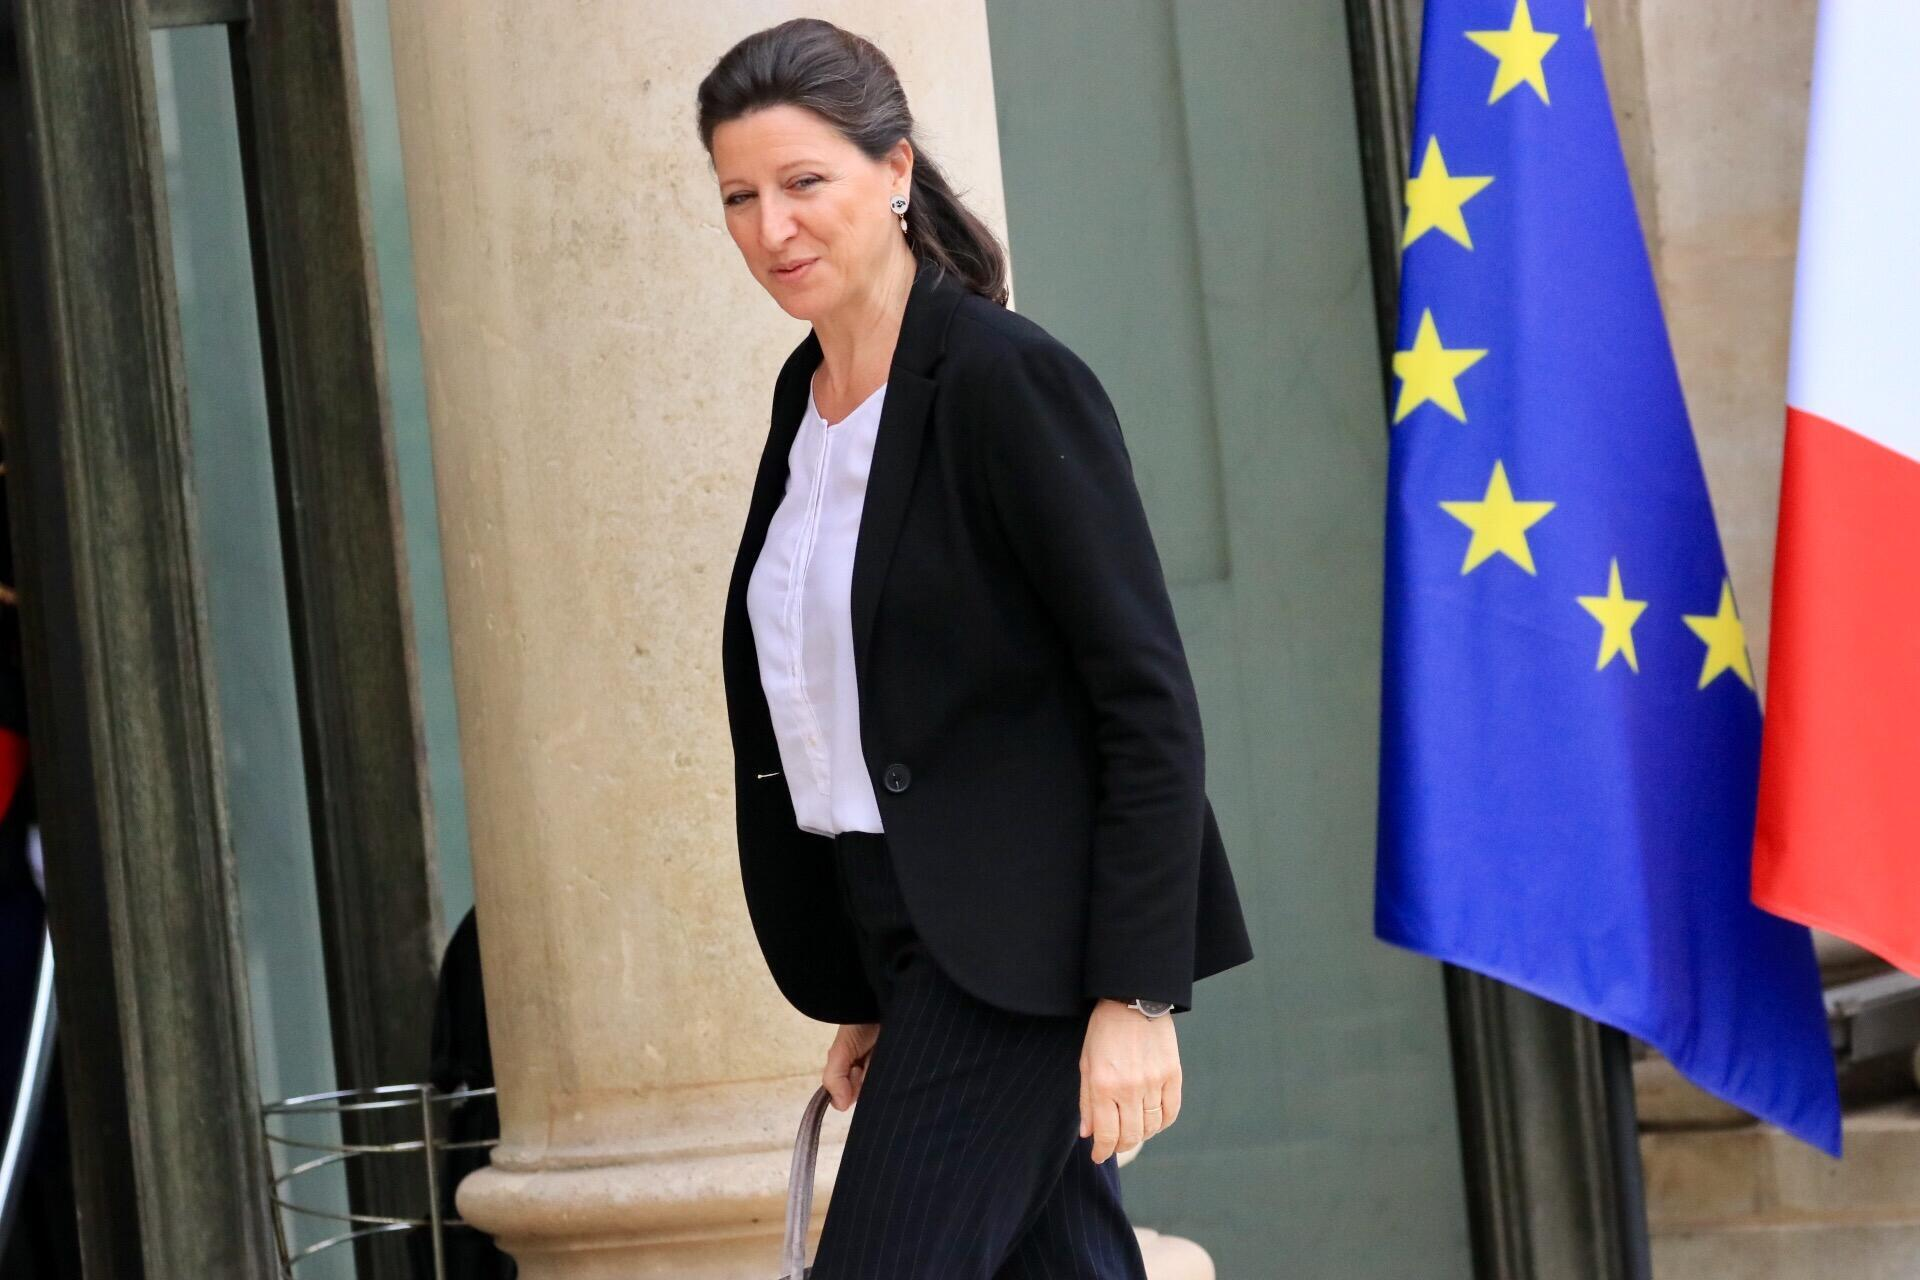 Minister with a mission: Agnès Buzyn sets about making France a healthier place.